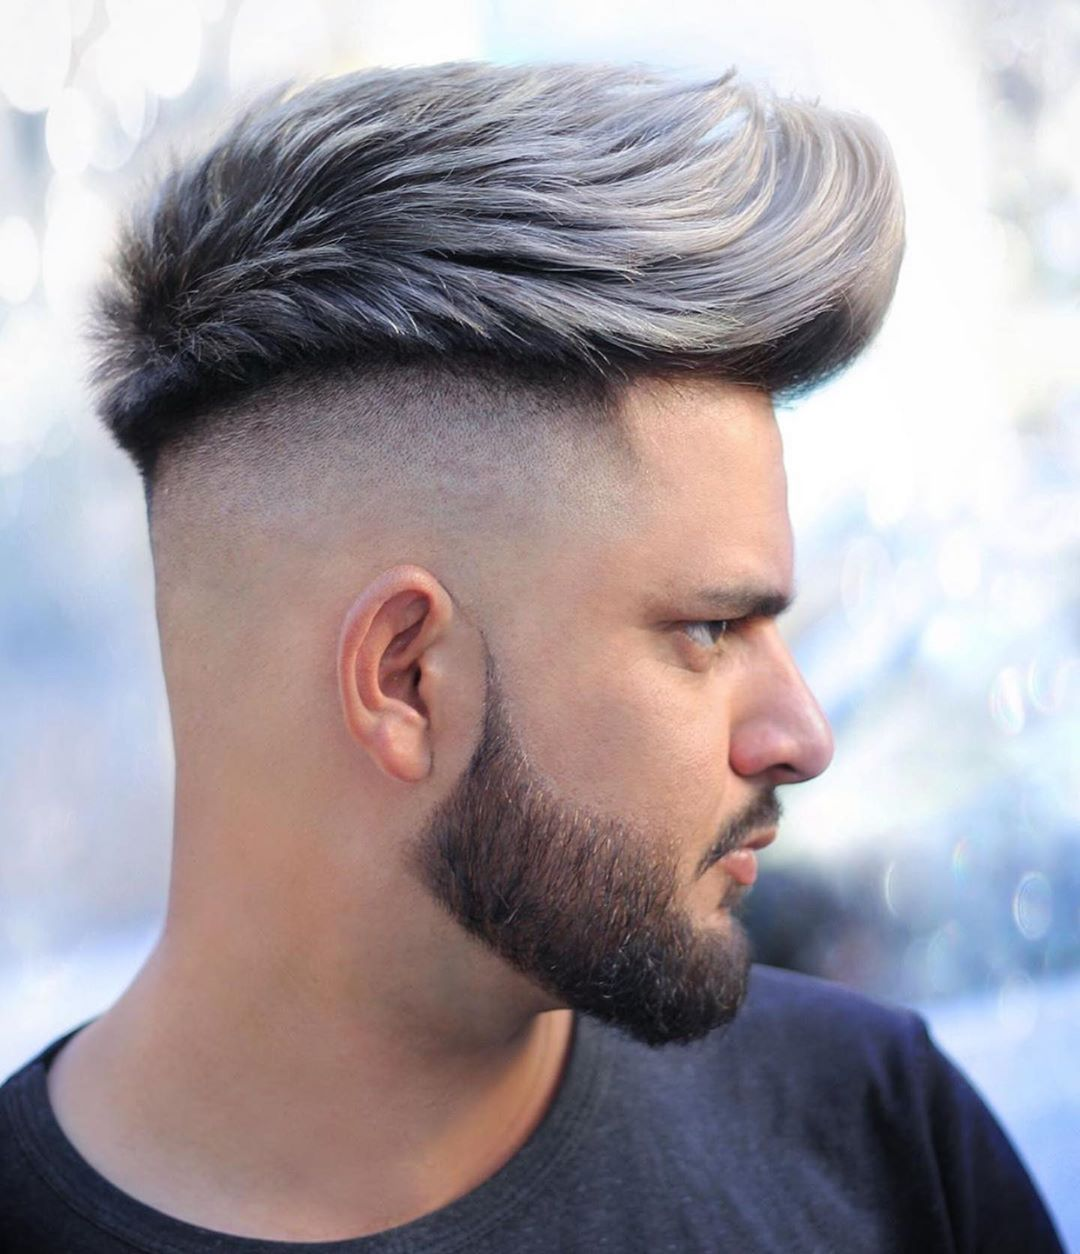 Top 25 Haircuts For Men 2021 Trends Styles: Mens Messy Quiff Hairstyle